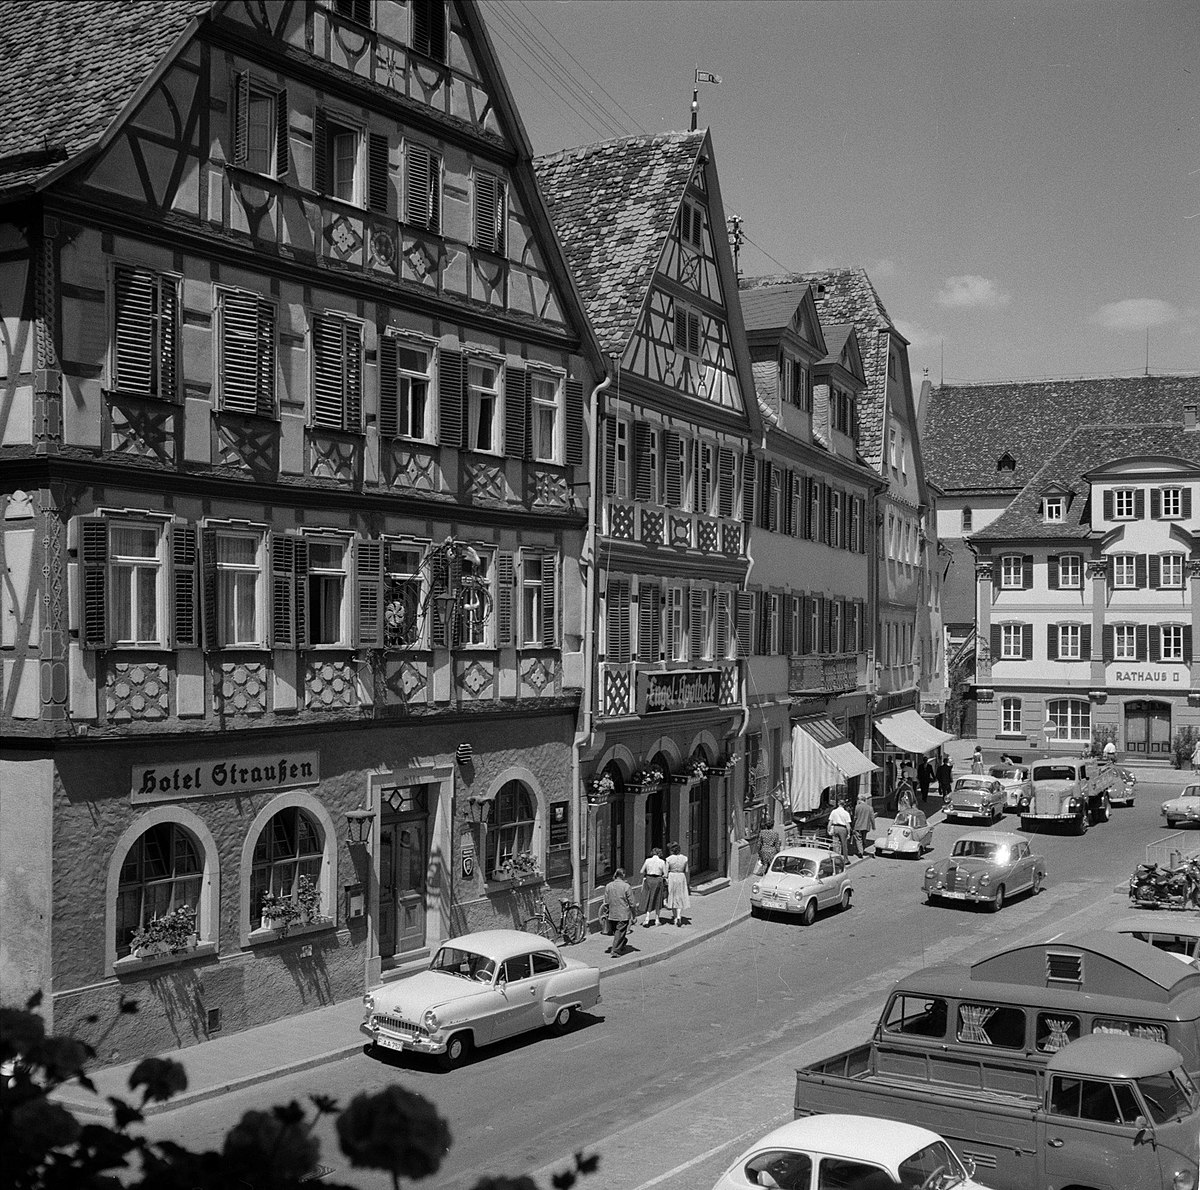 Casino Bad Mergentheim